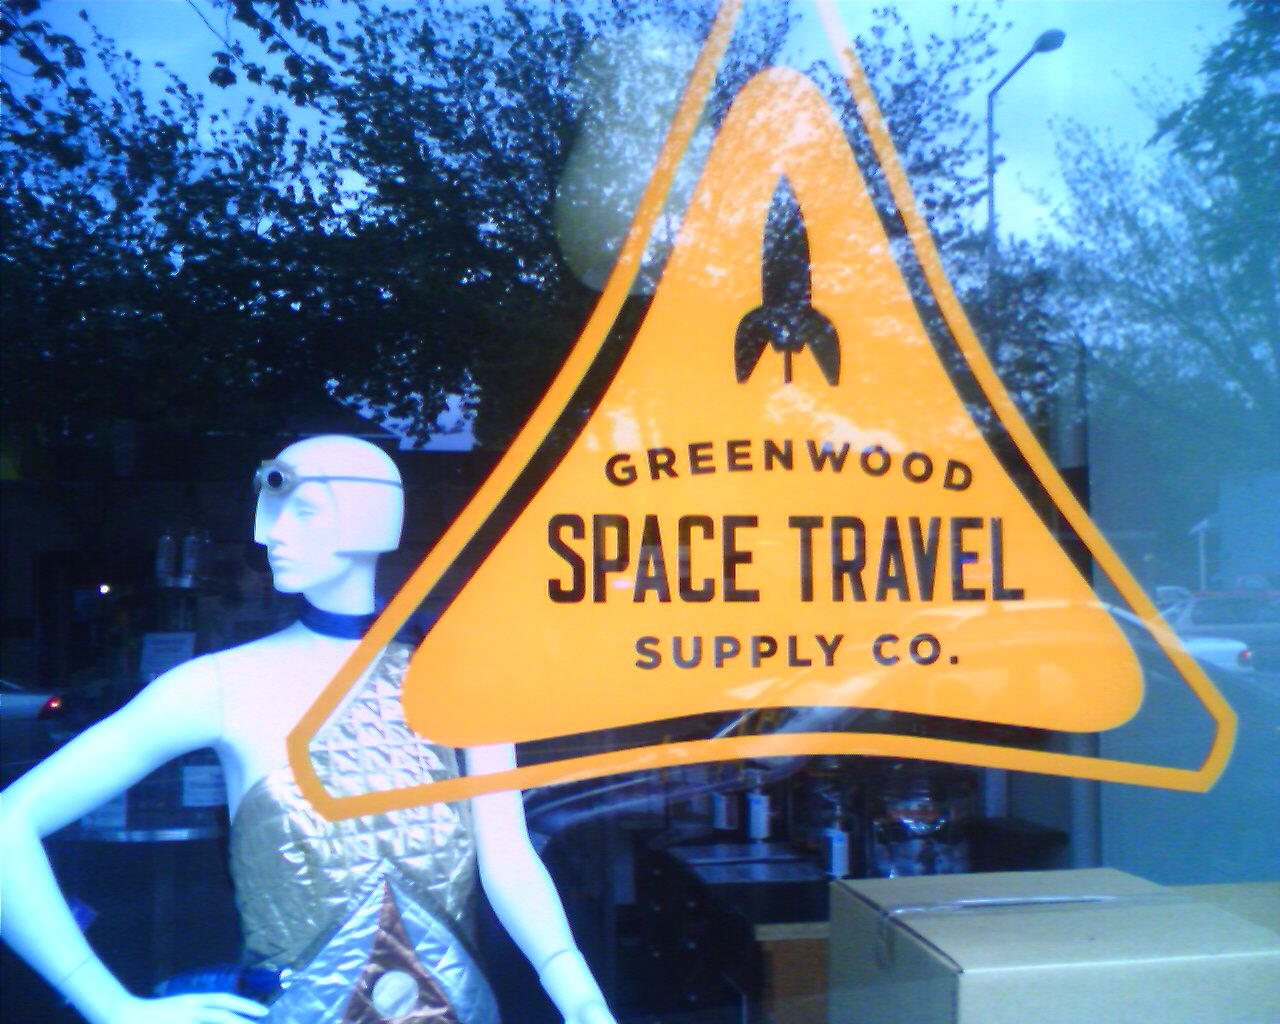 Greenwood Space Travel Supply Company.